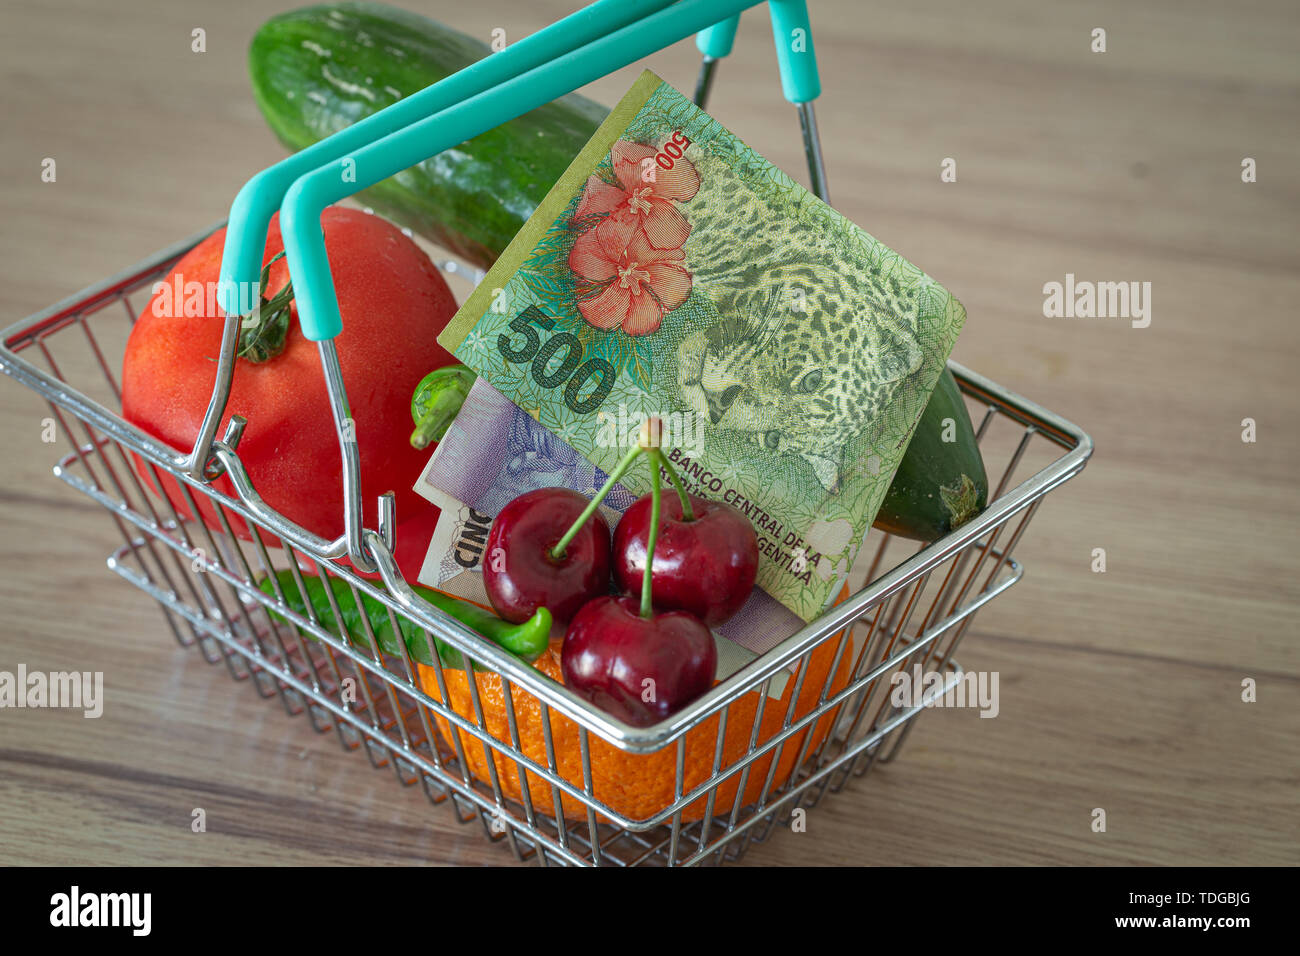 vegetables and fruits in the shopping basket along with Argentinean money / the concept of food price increase - Stock Image